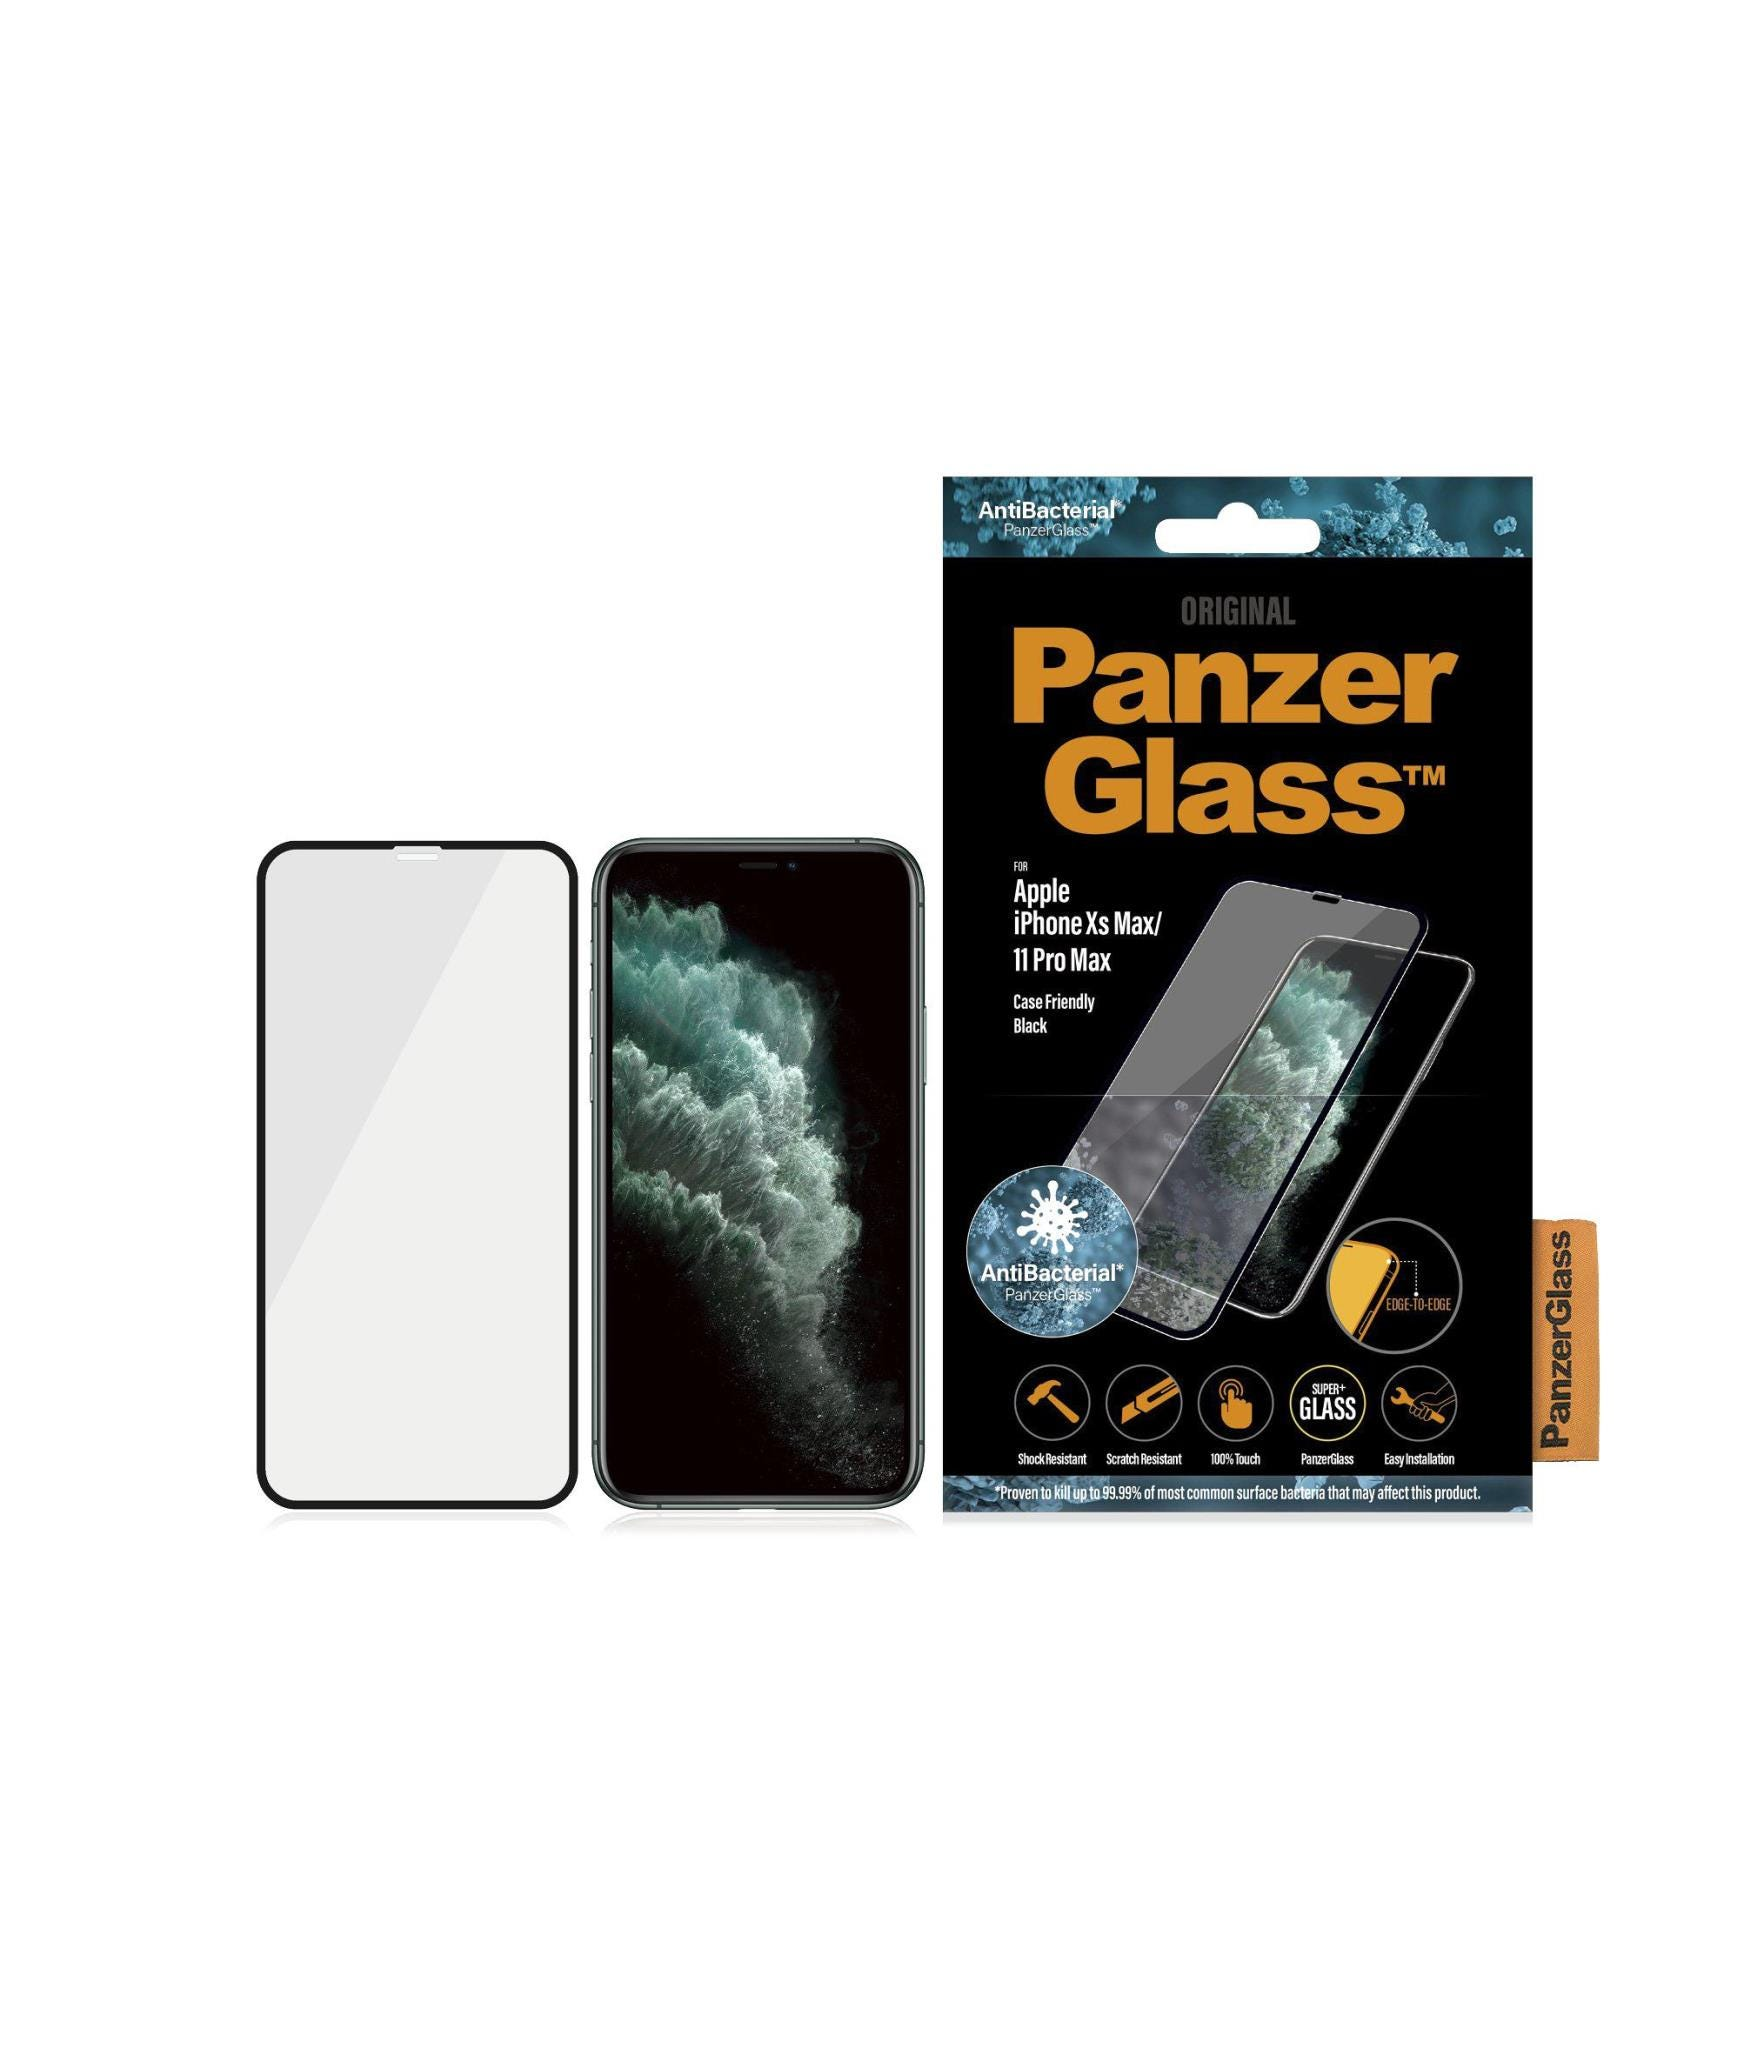 PanzerGlass Apple iPhone Xs Max/11 Pro Max Case Friendly Anti-Bacterial Screen Protector - Black